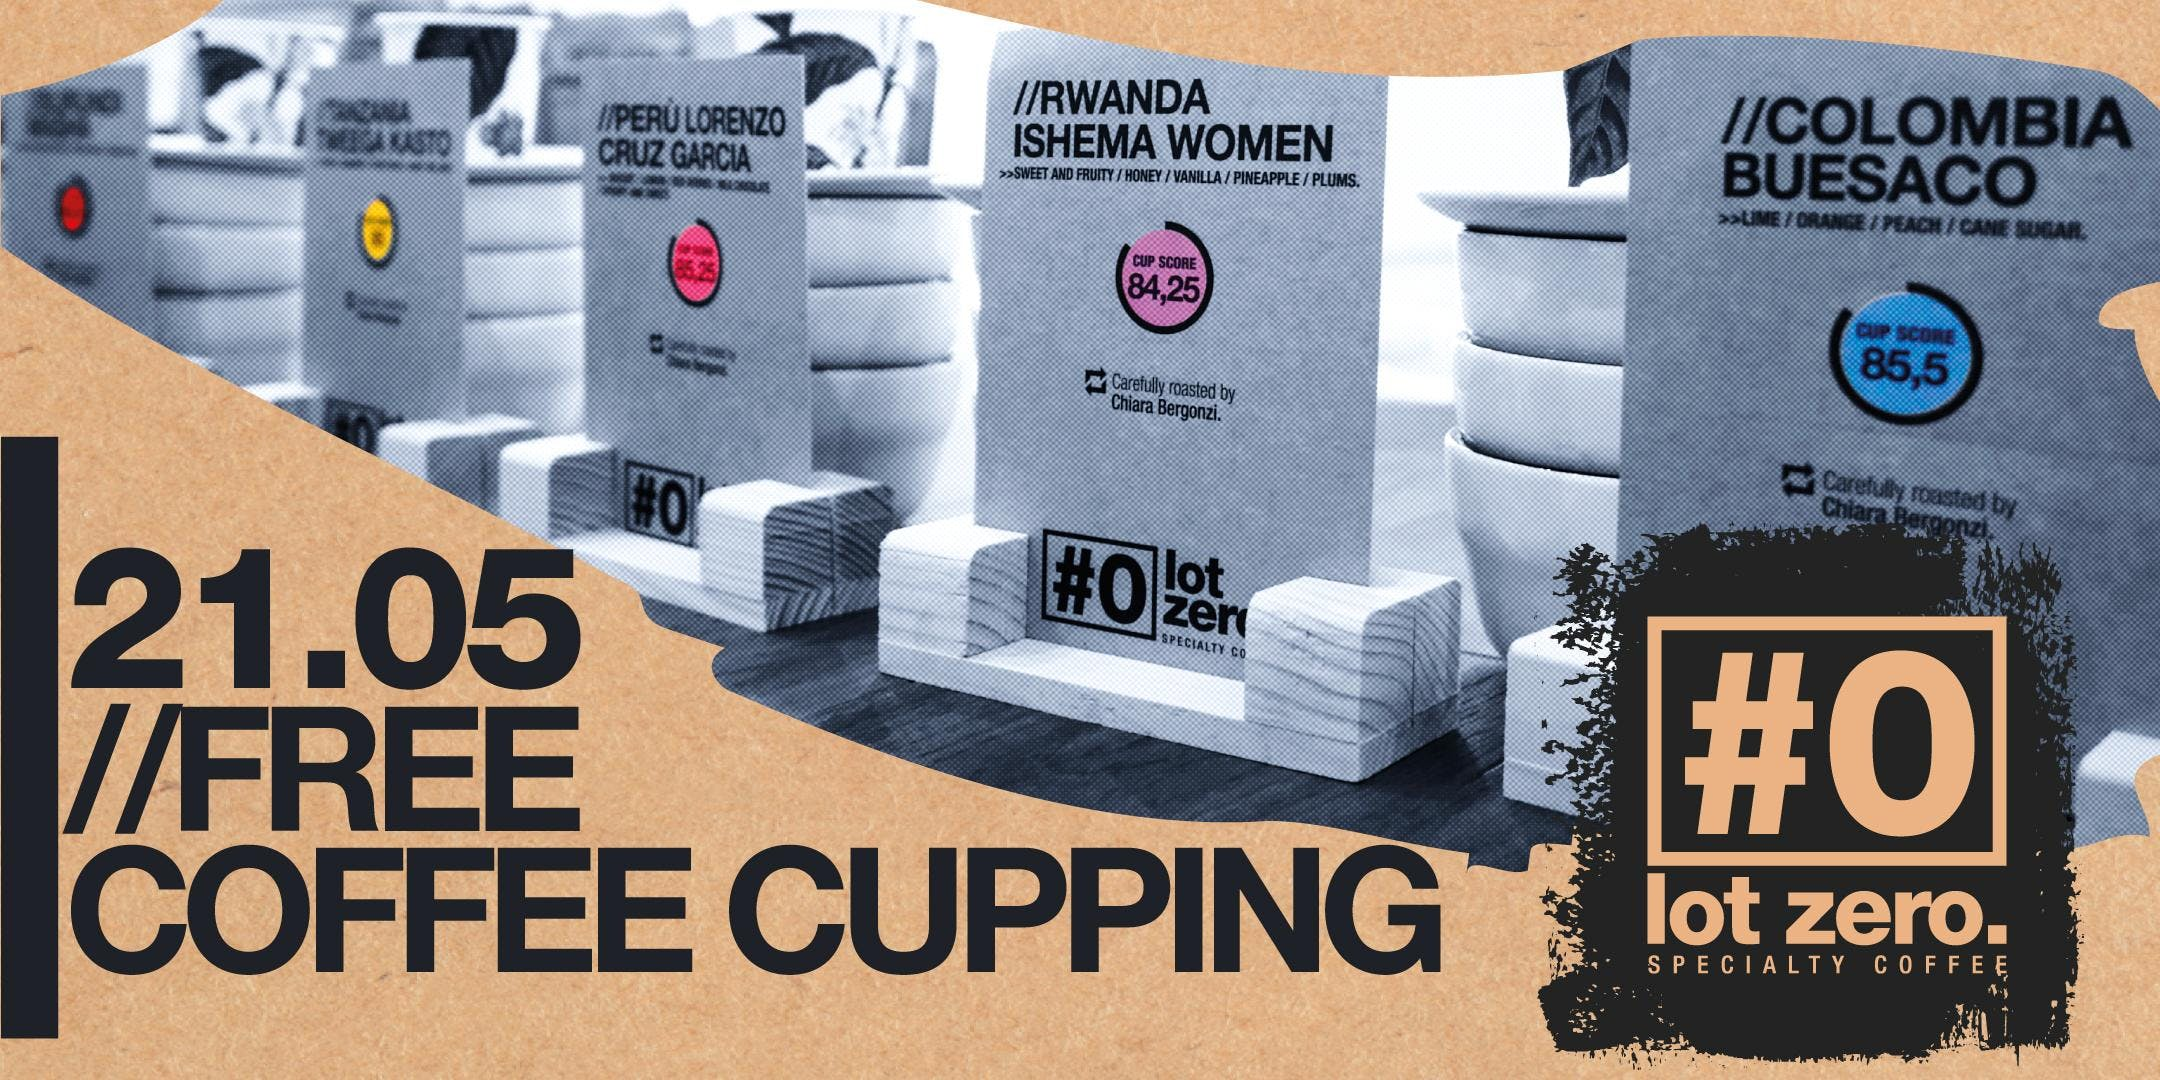 LOT ZERO COFFEE TASTING // A free Cupping Eve